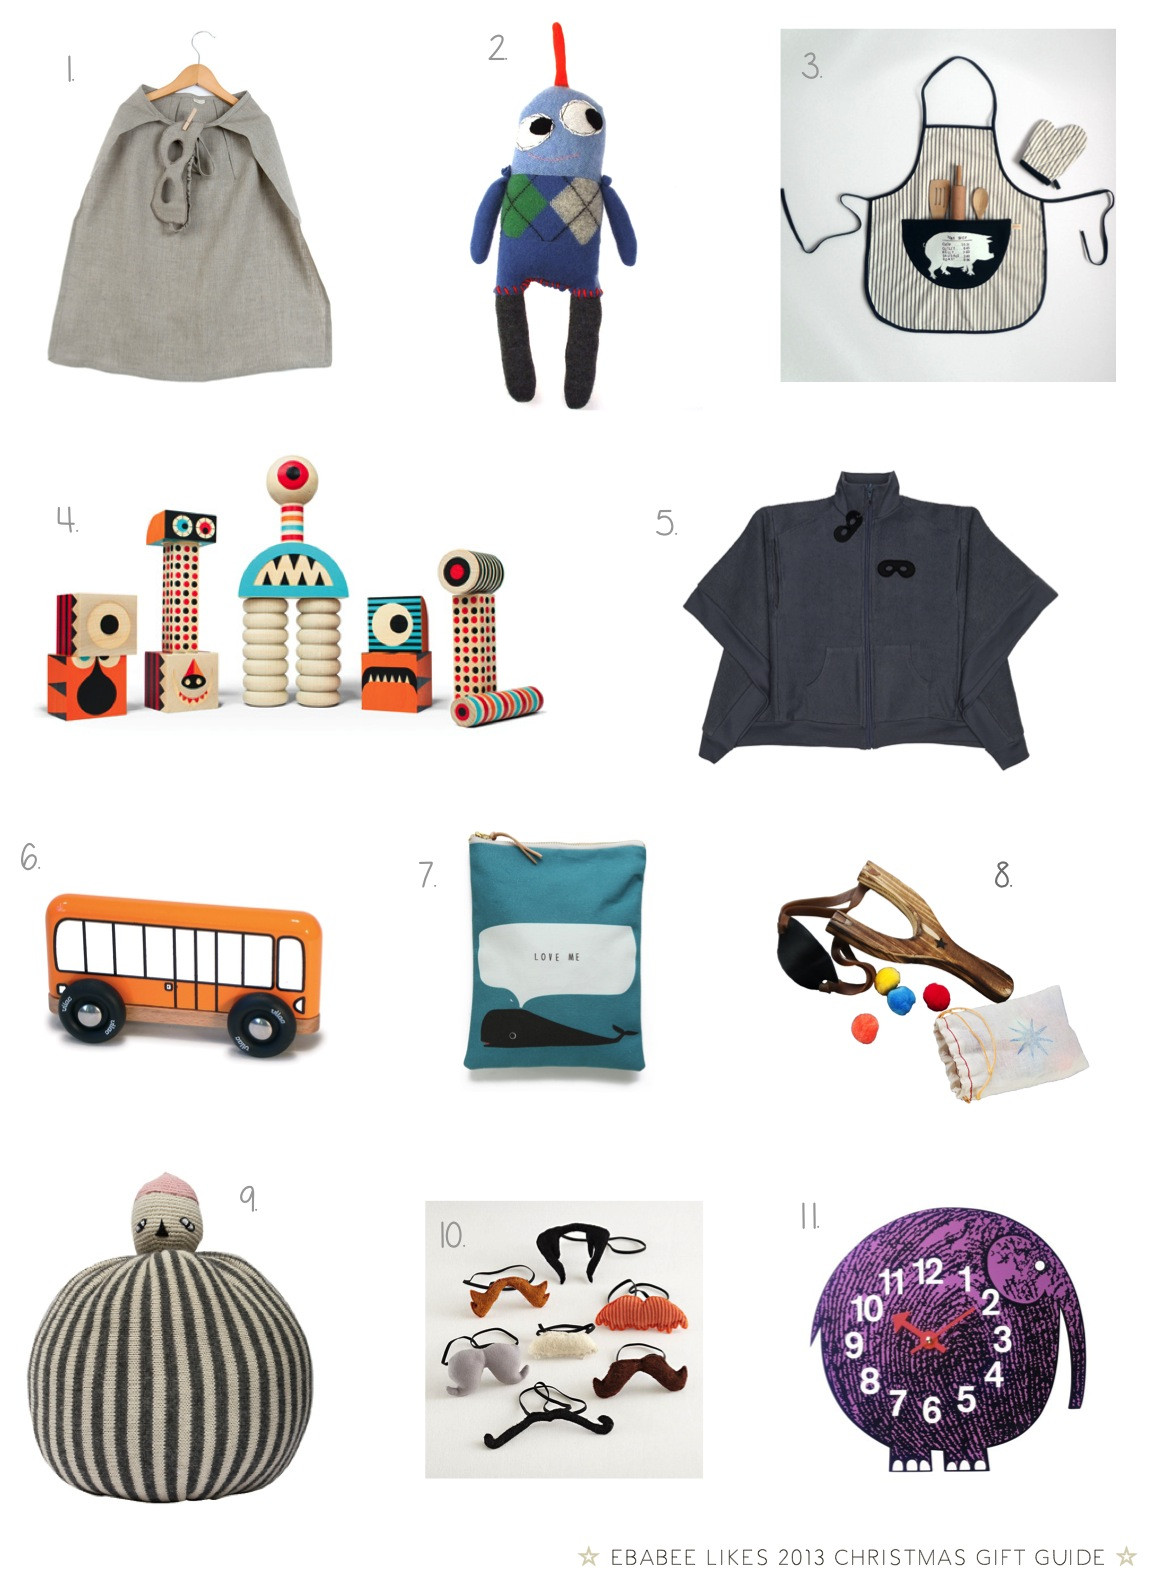 Best ideas about Xmas Gift Ideas For Boys . Save or Pin ebabee likes Gifts Archives ebabee likes Now.